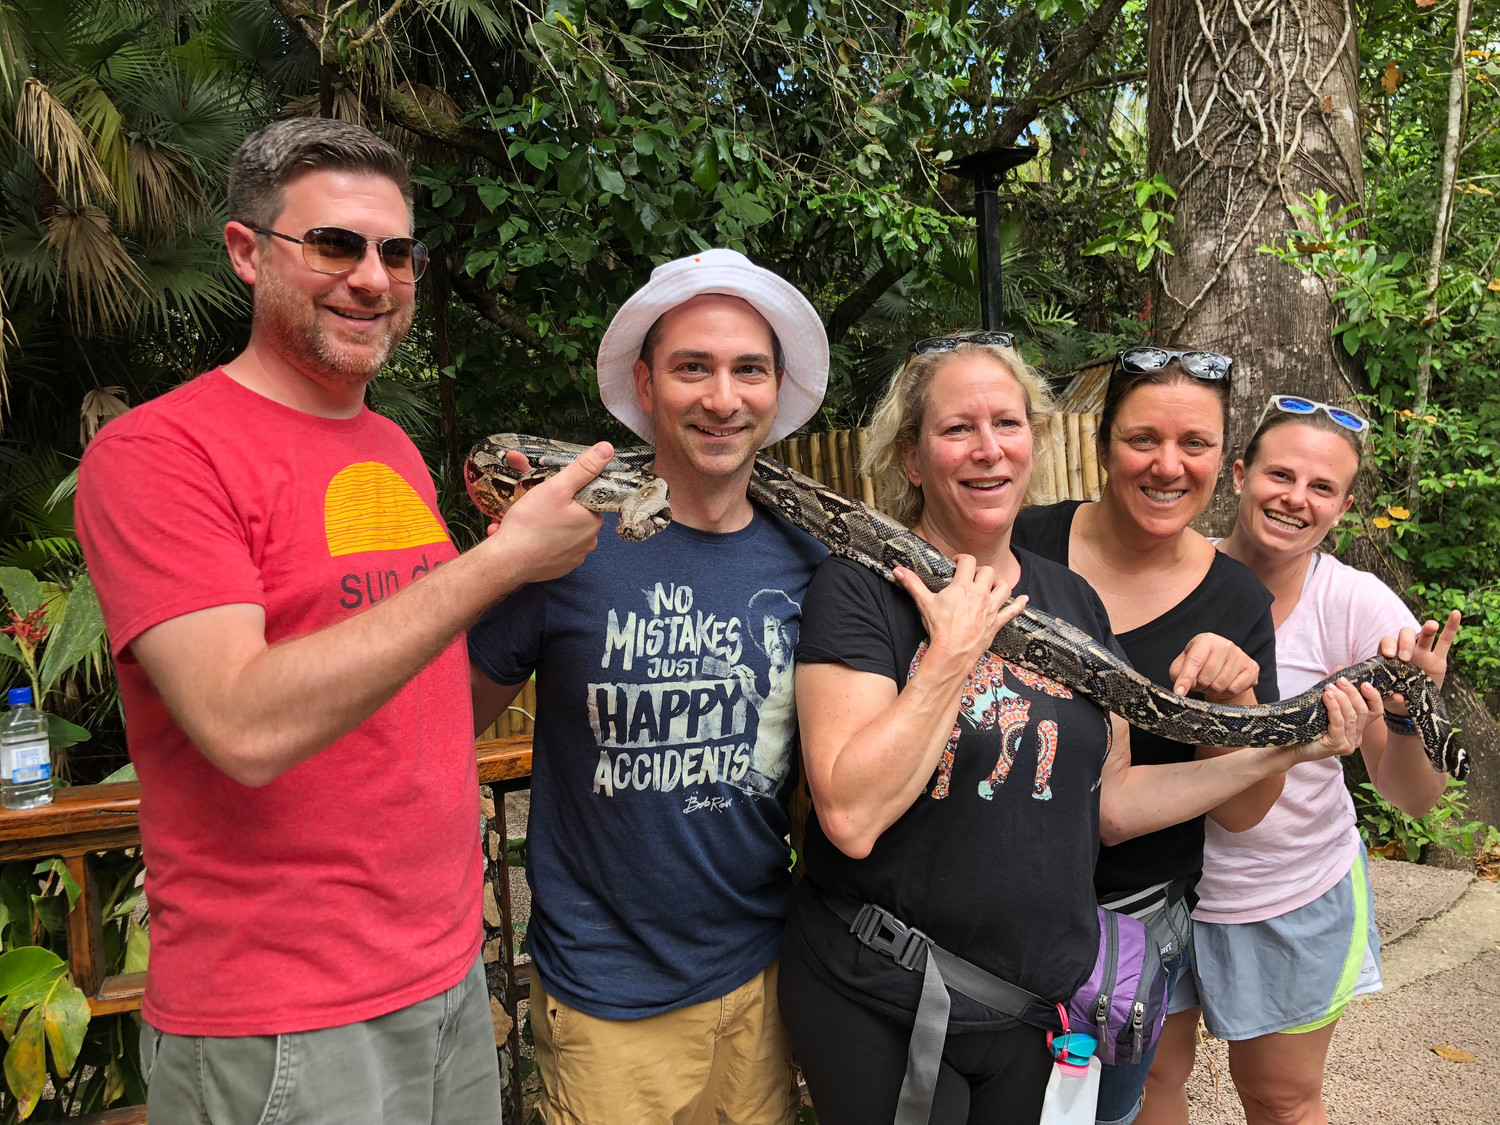 Teachers Joshua Timlin, Seth Klein, Nancy Cunningham, Mary Alice Kelly and Dana Francis made a new friend while walking through the jungle.